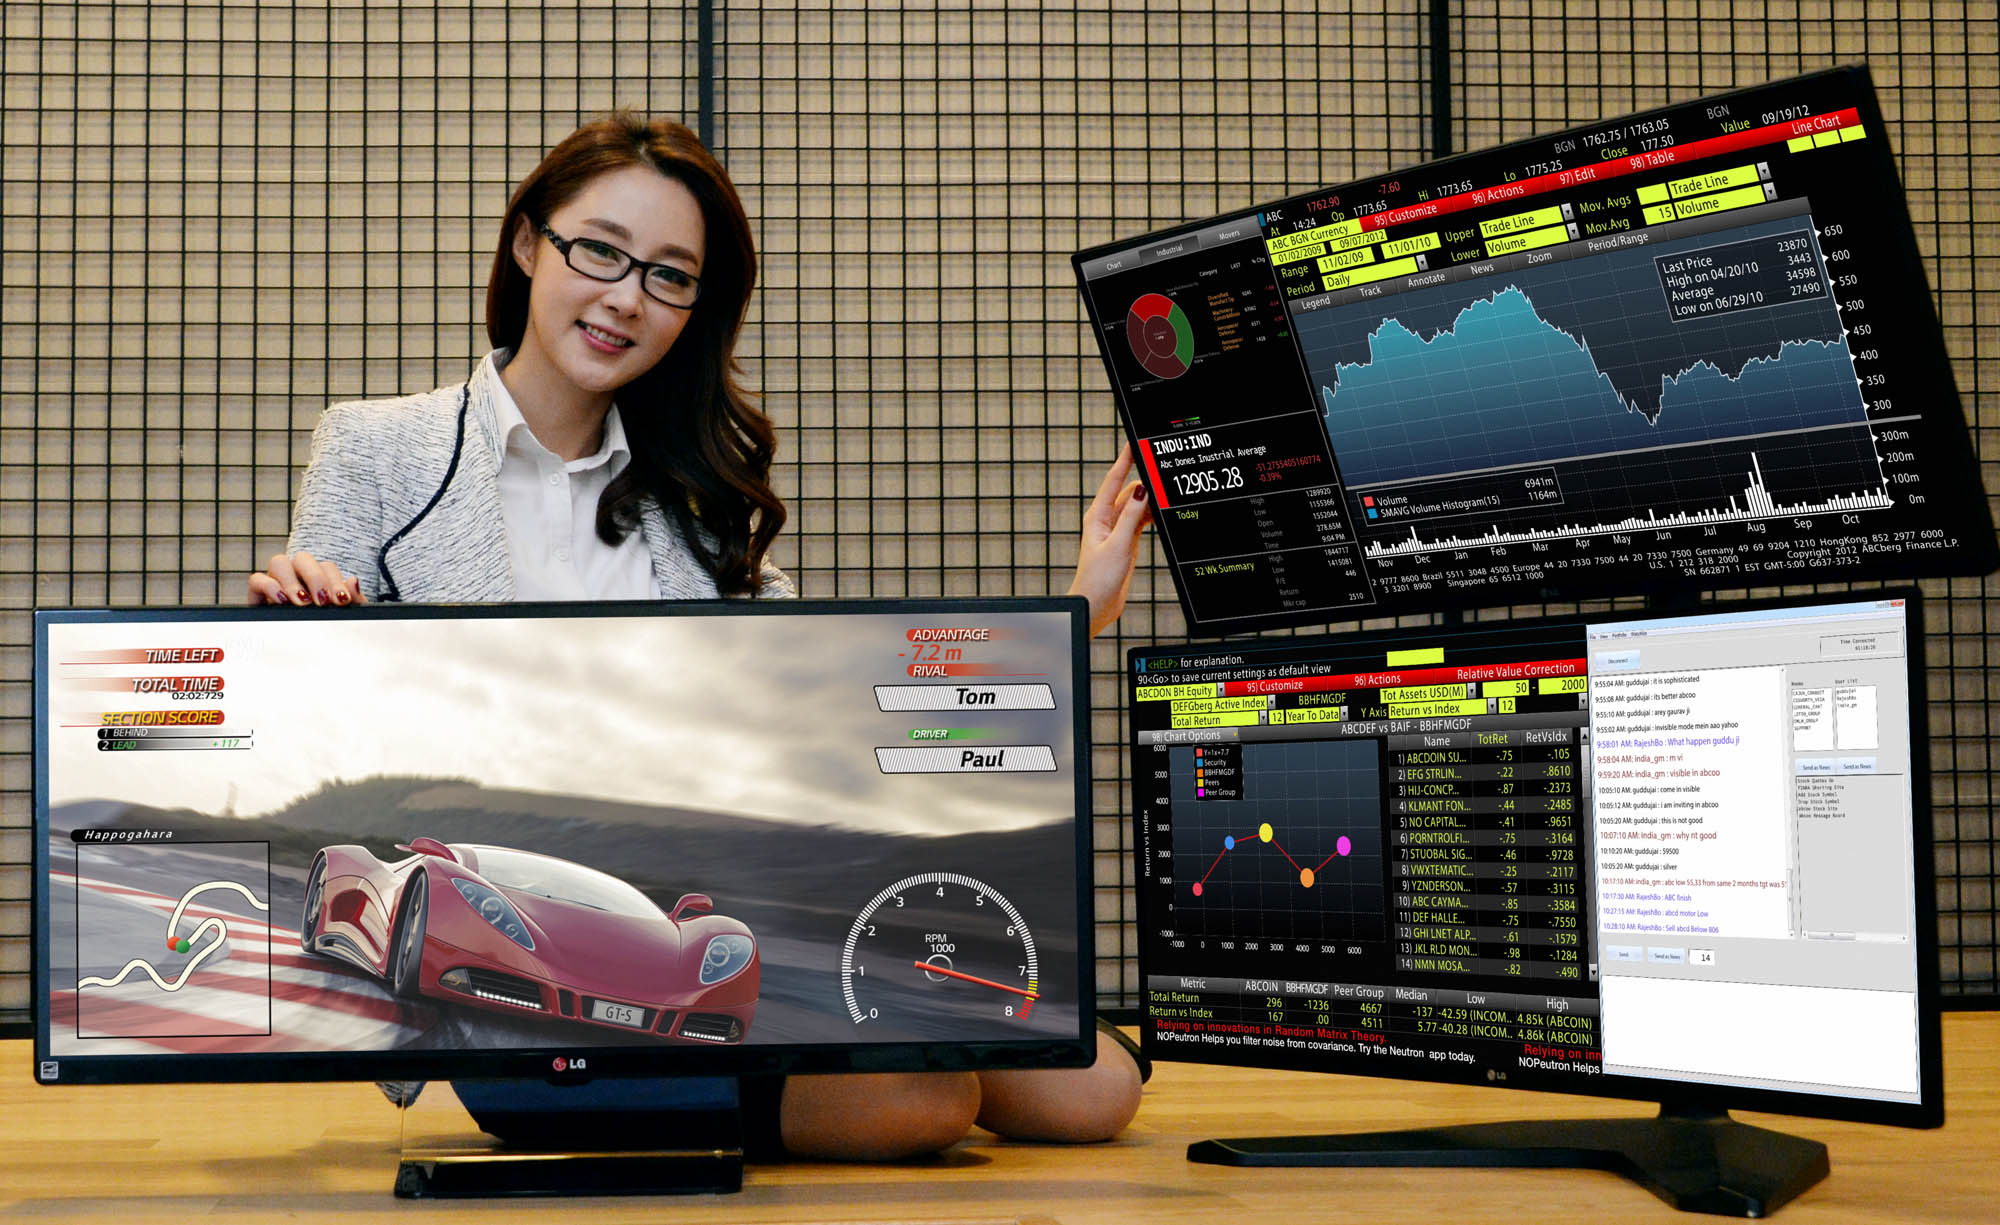 LG TO INTRODUCE WORLD'S FIRST 21:9 ULTRAWIDE GAMING MONITOR WITH AMD